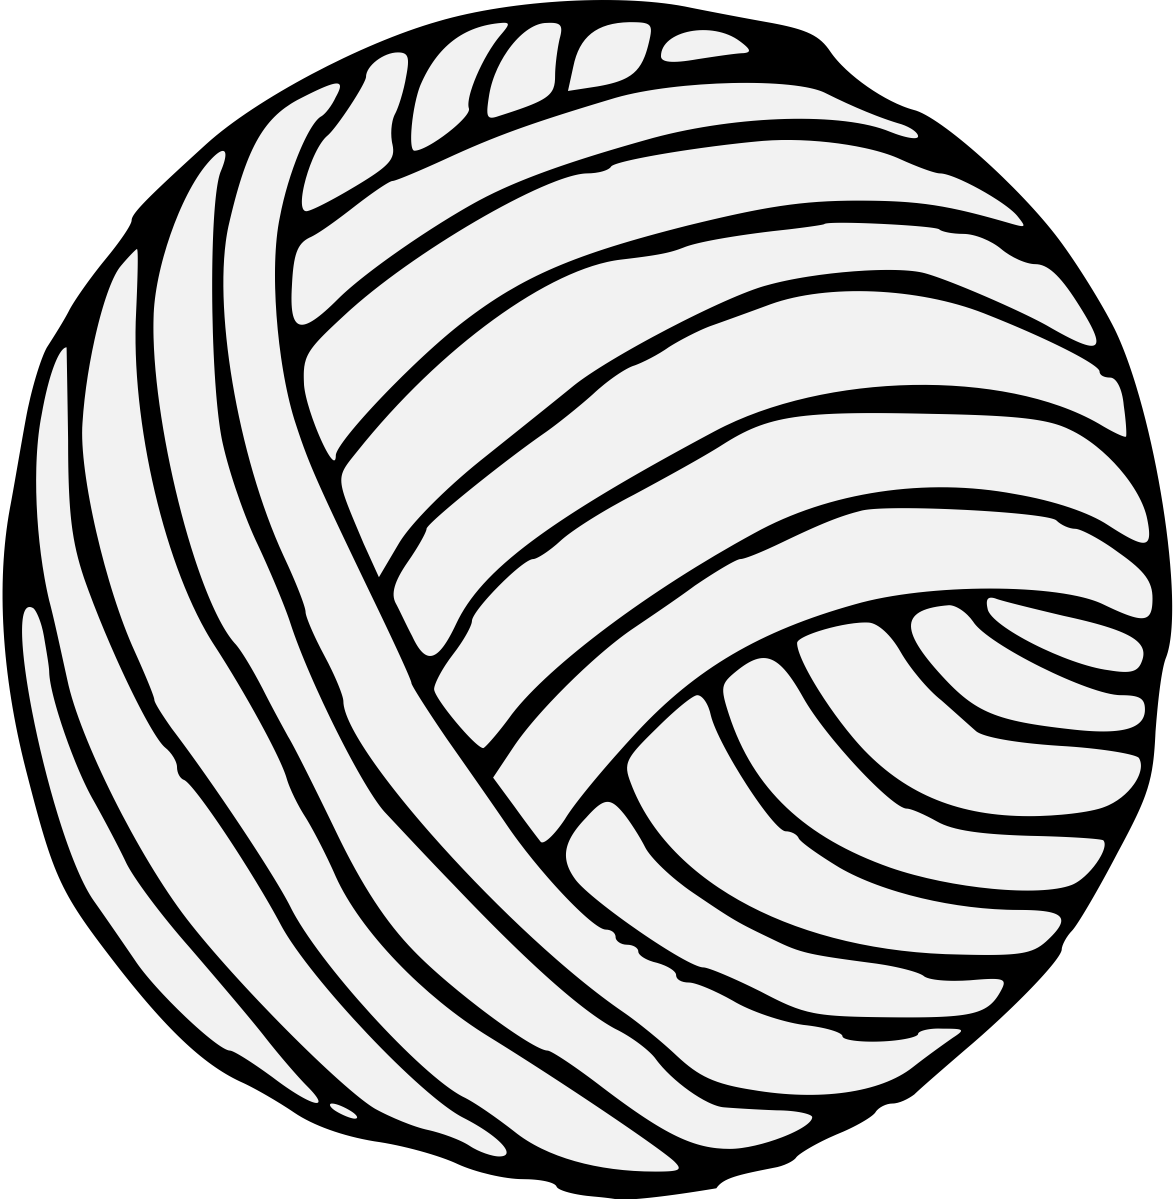 Yarn Clipart Black And White Drawn Ball Yarn 7 - Cl...